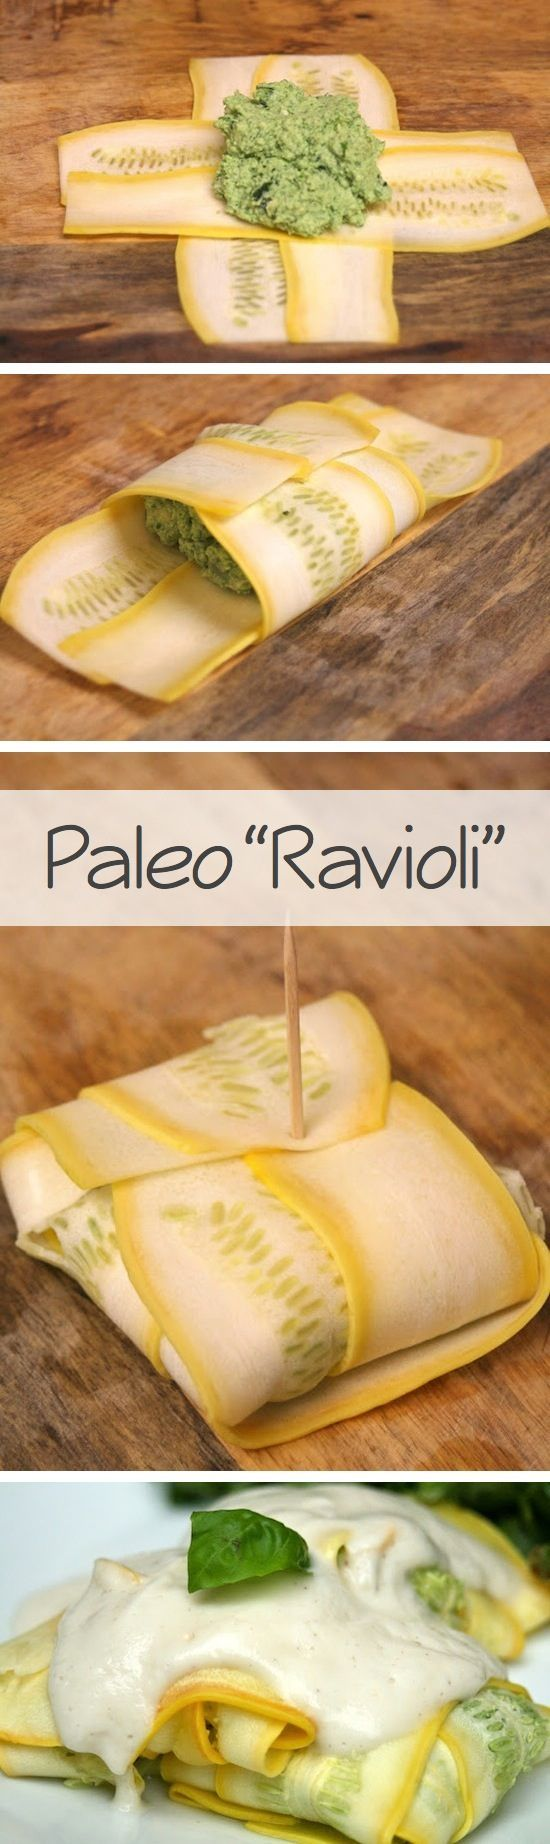 "Paleo ""Ravioli"" - made these both with white sauce and with red sauce. I personally prefer them with a homemade sauce made with crushed tomatoes, garlic, onion and basil."